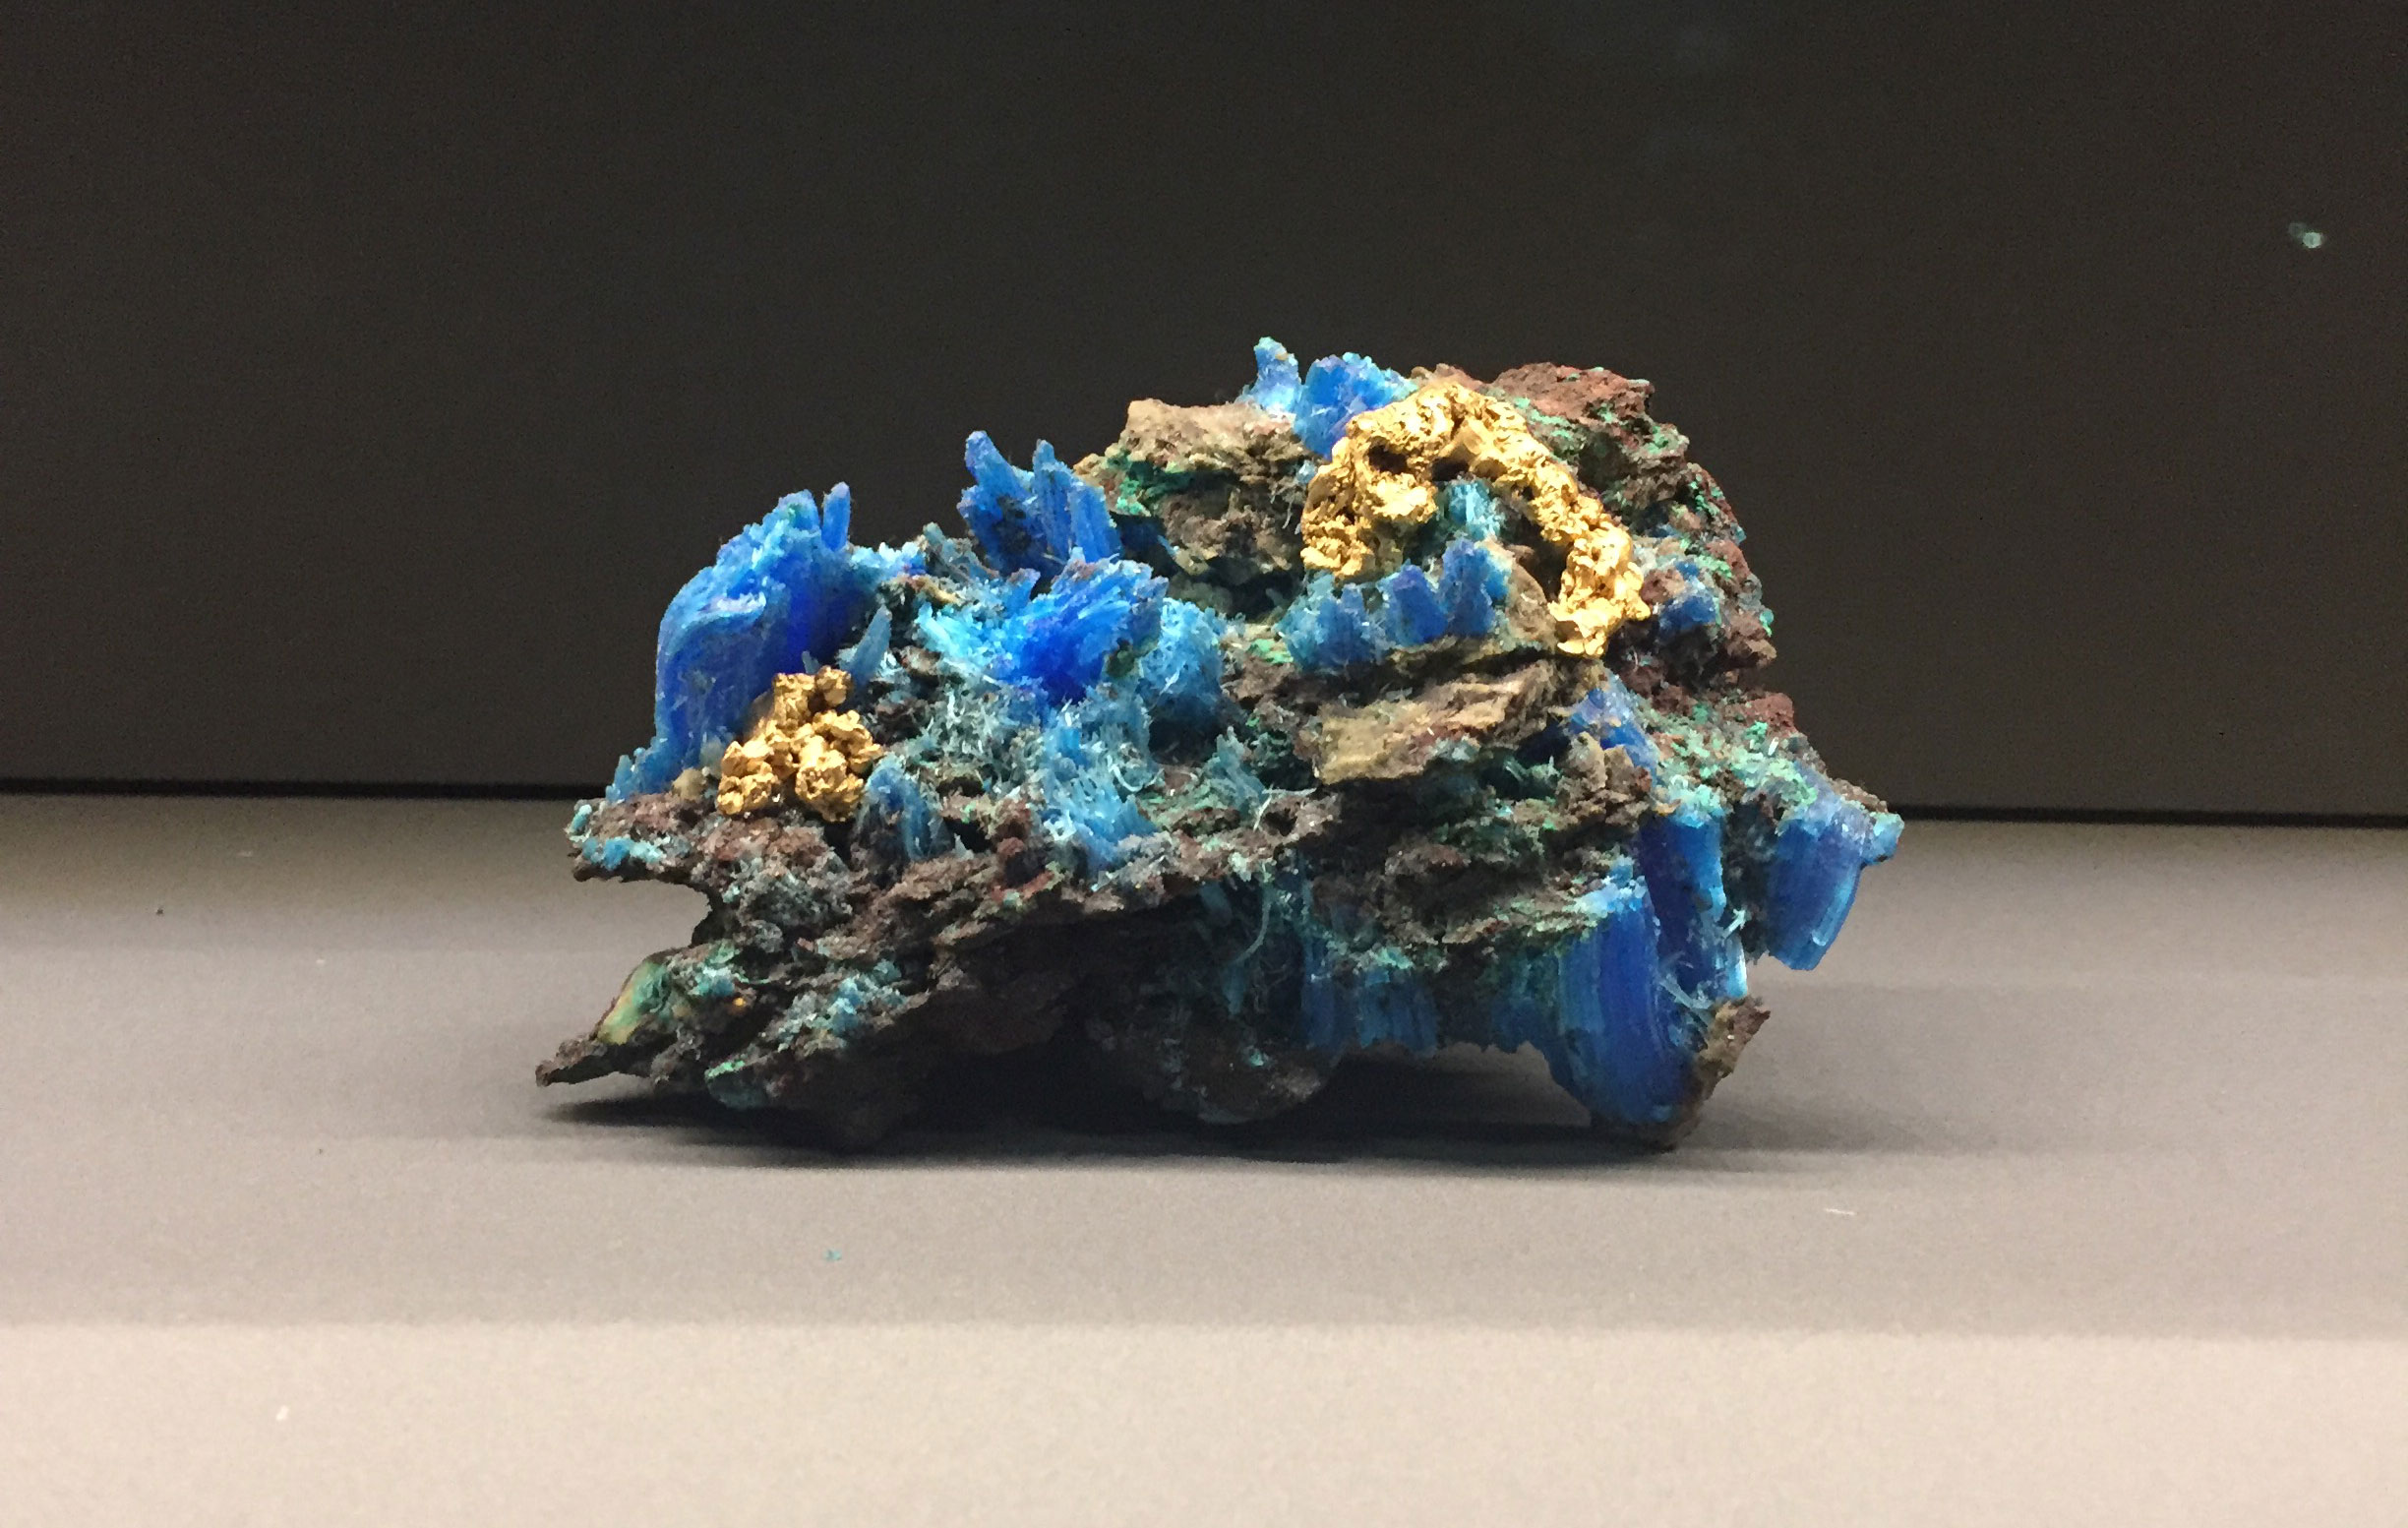 Semi-precious stone salvaged from the Wreck of the 'Unbelievable'- Damien Hirst 2017